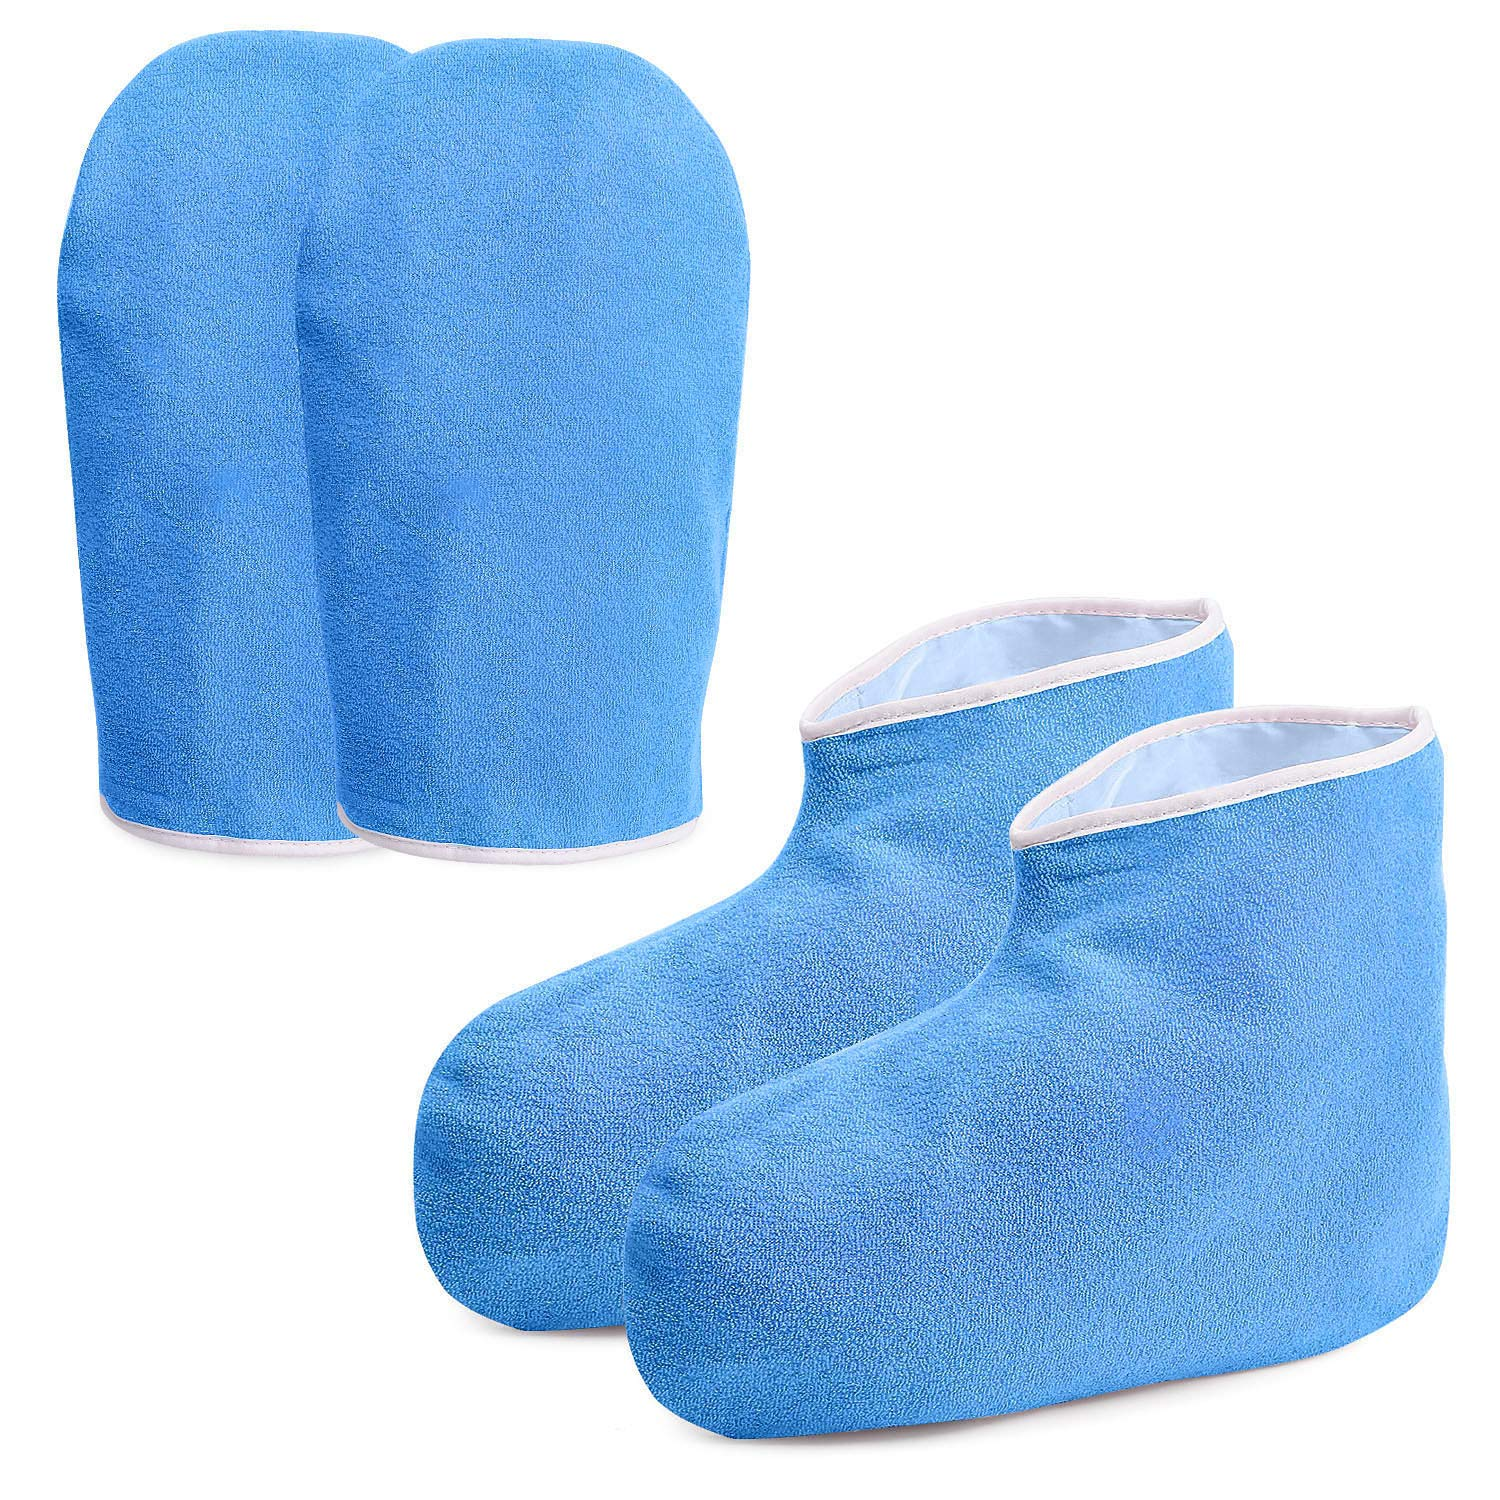 Noverlife Paraffin Wax Work Gloves & Booties, Wax Bath Hand Treatment Mitts Foot Spa Cover for Women, Thin Heat Therapy Insulated Soft Cotton Mittens Feet Hand Care Set - Blue : Beauty